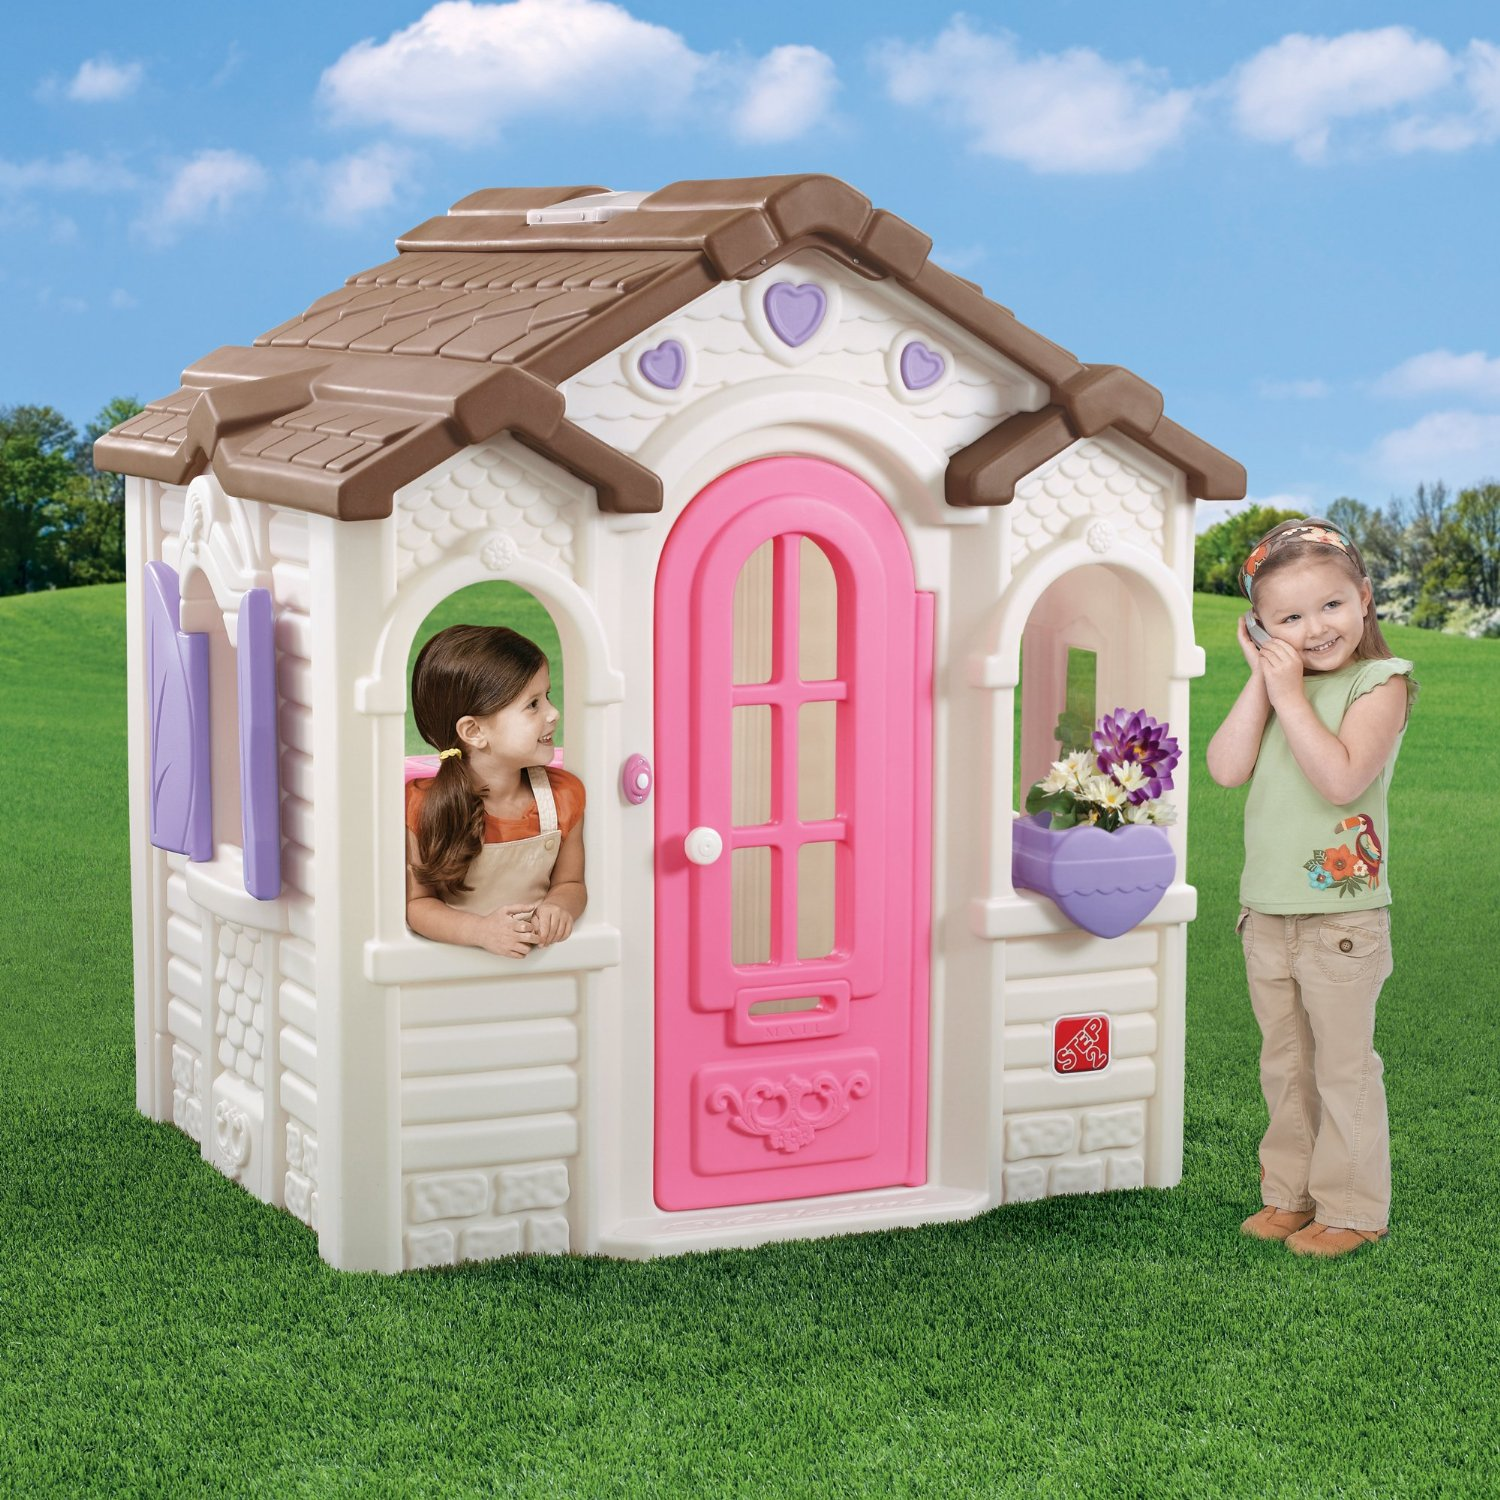 Wonderful Little Tikes Playhouse Made Of Plastic With Brown Roof For Playground Decor Ideas